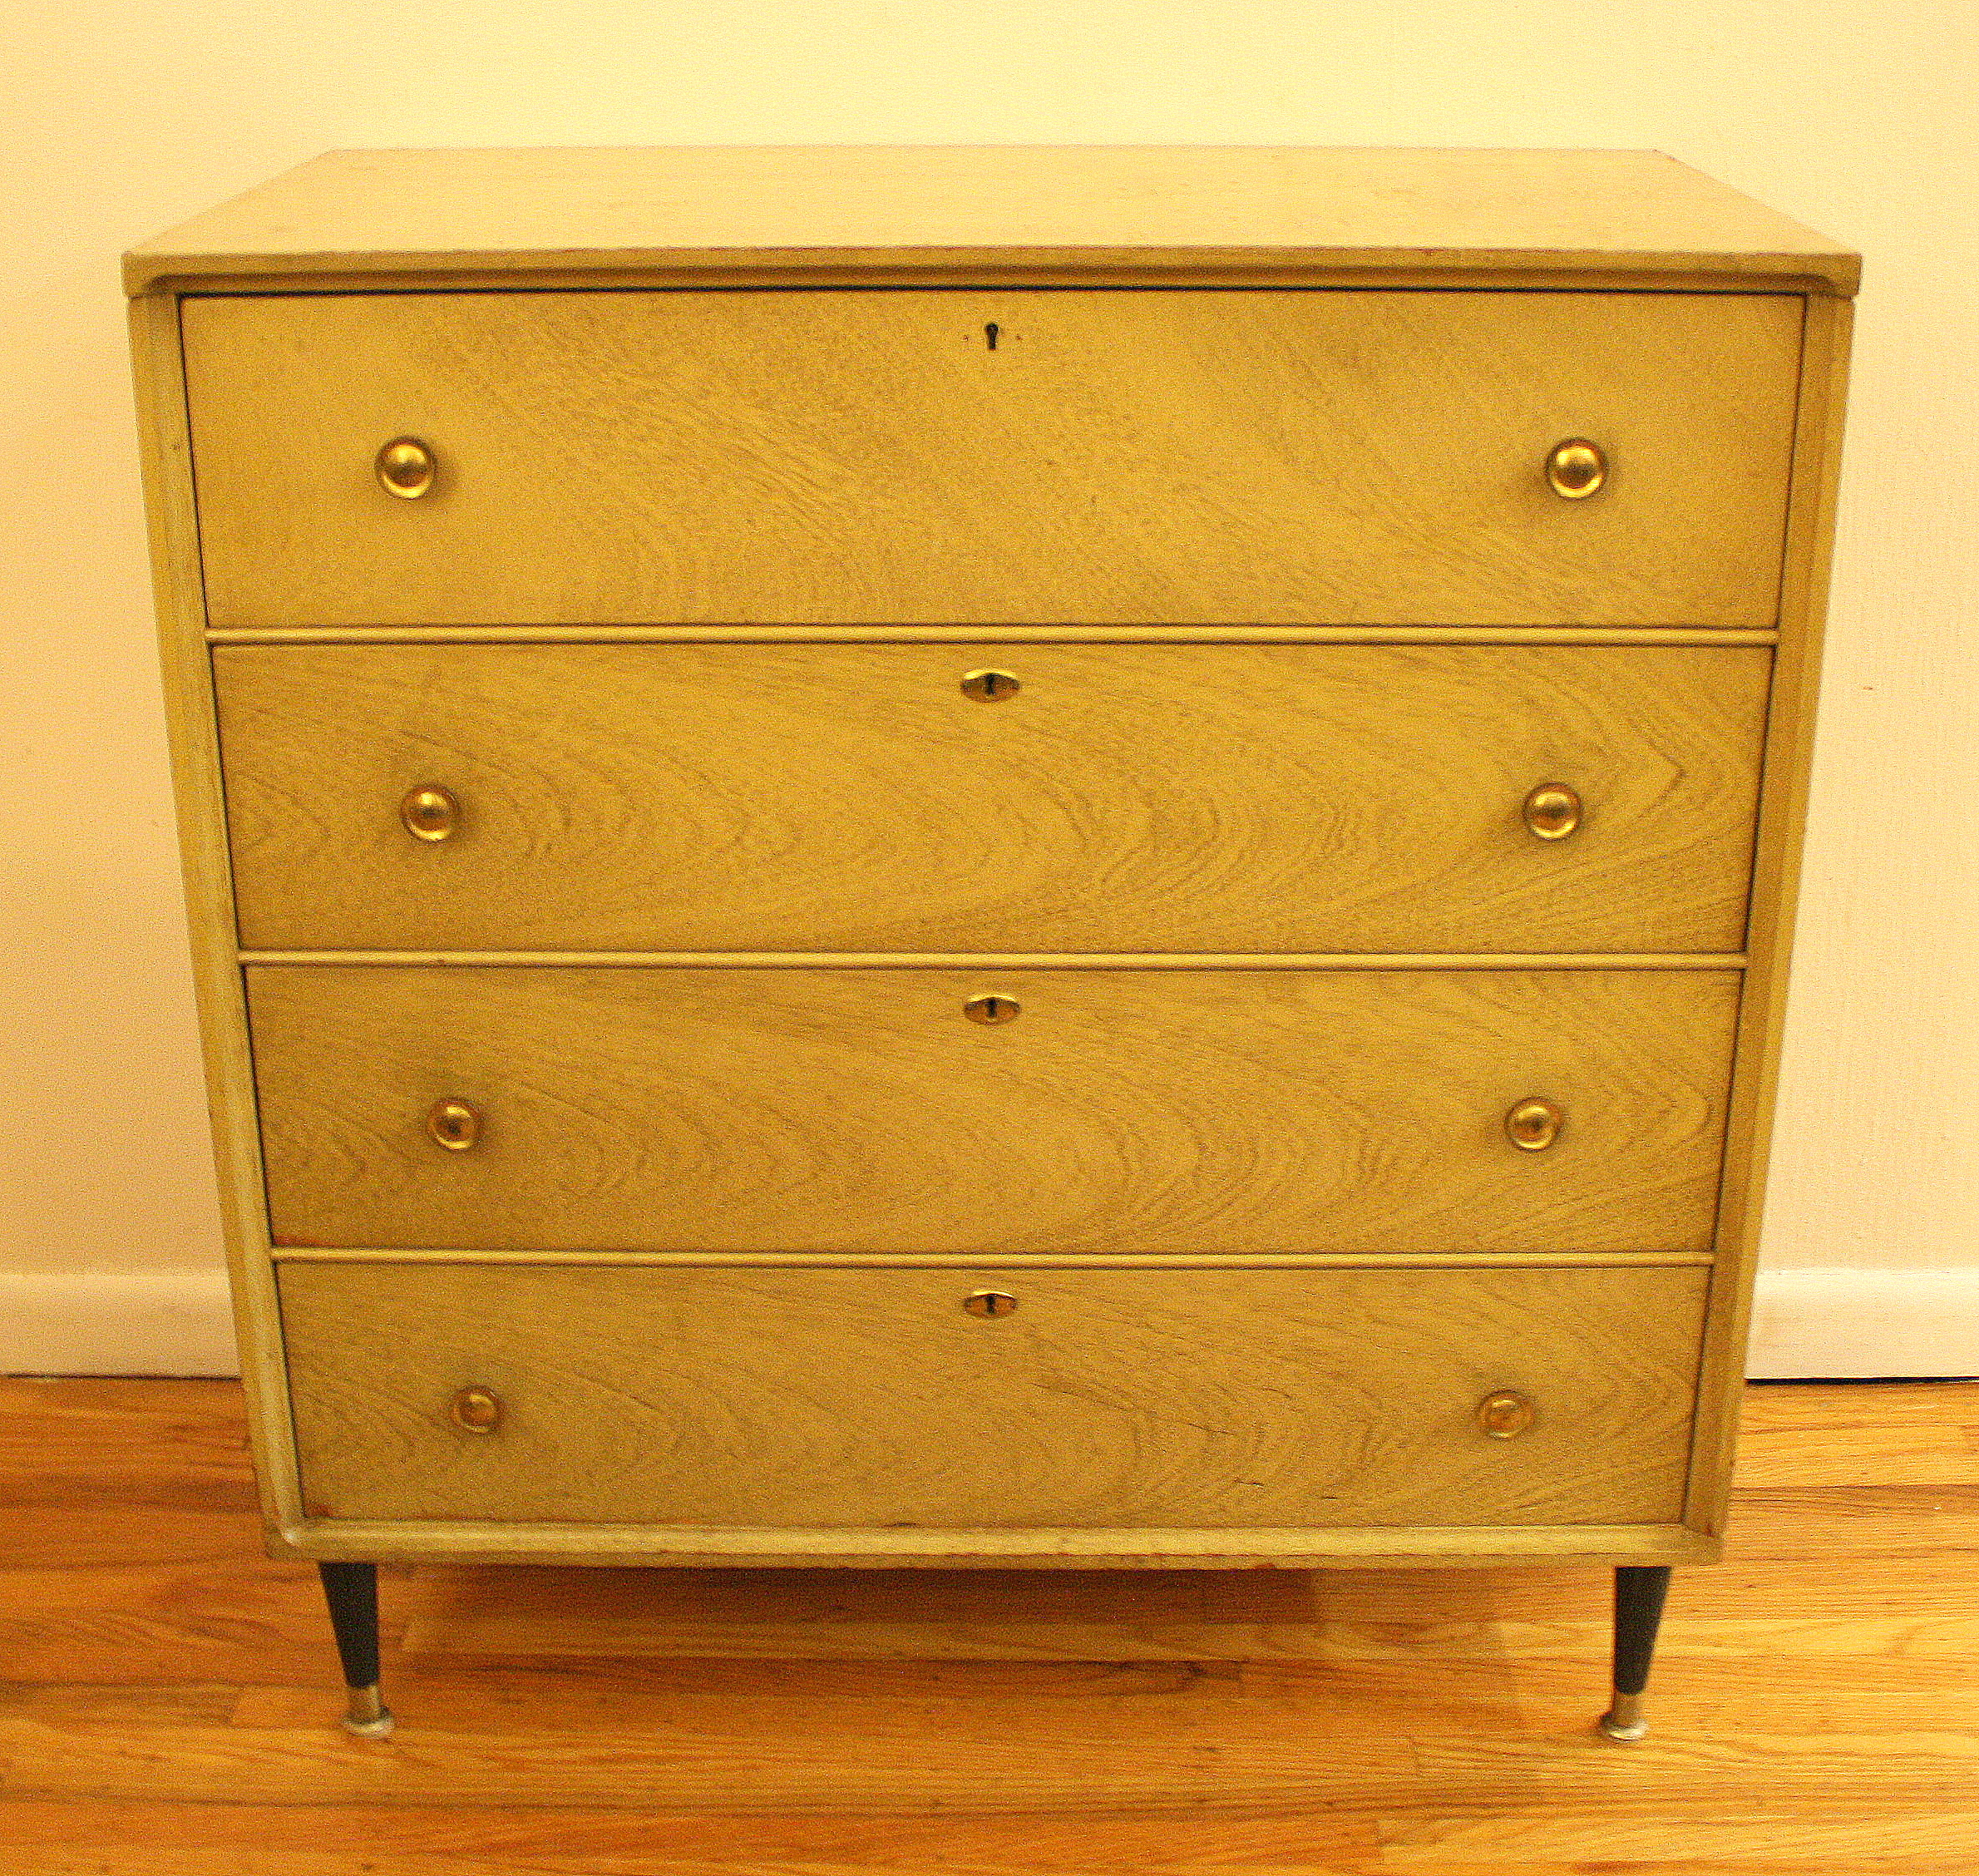 company boston sold blue stanley restored by furniture refinished rapids surface lamb img and wood century furnishings we pulls manufactured in the drawer top it was mid